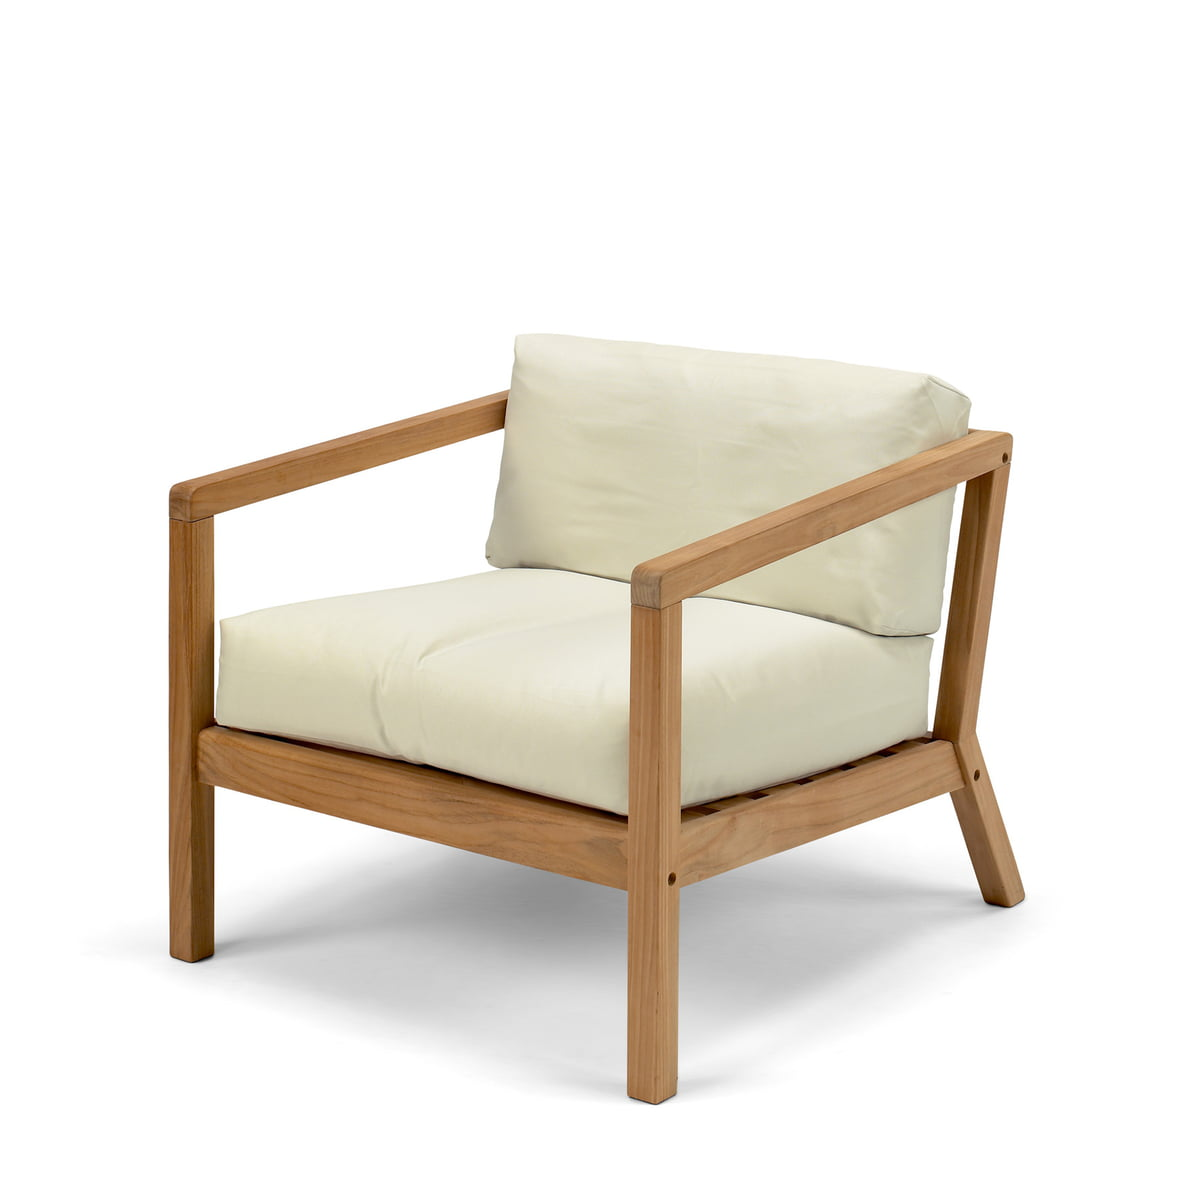 Elegant Virkelyst Chair By Skagerak Made Of Teak Wood In Eggshell